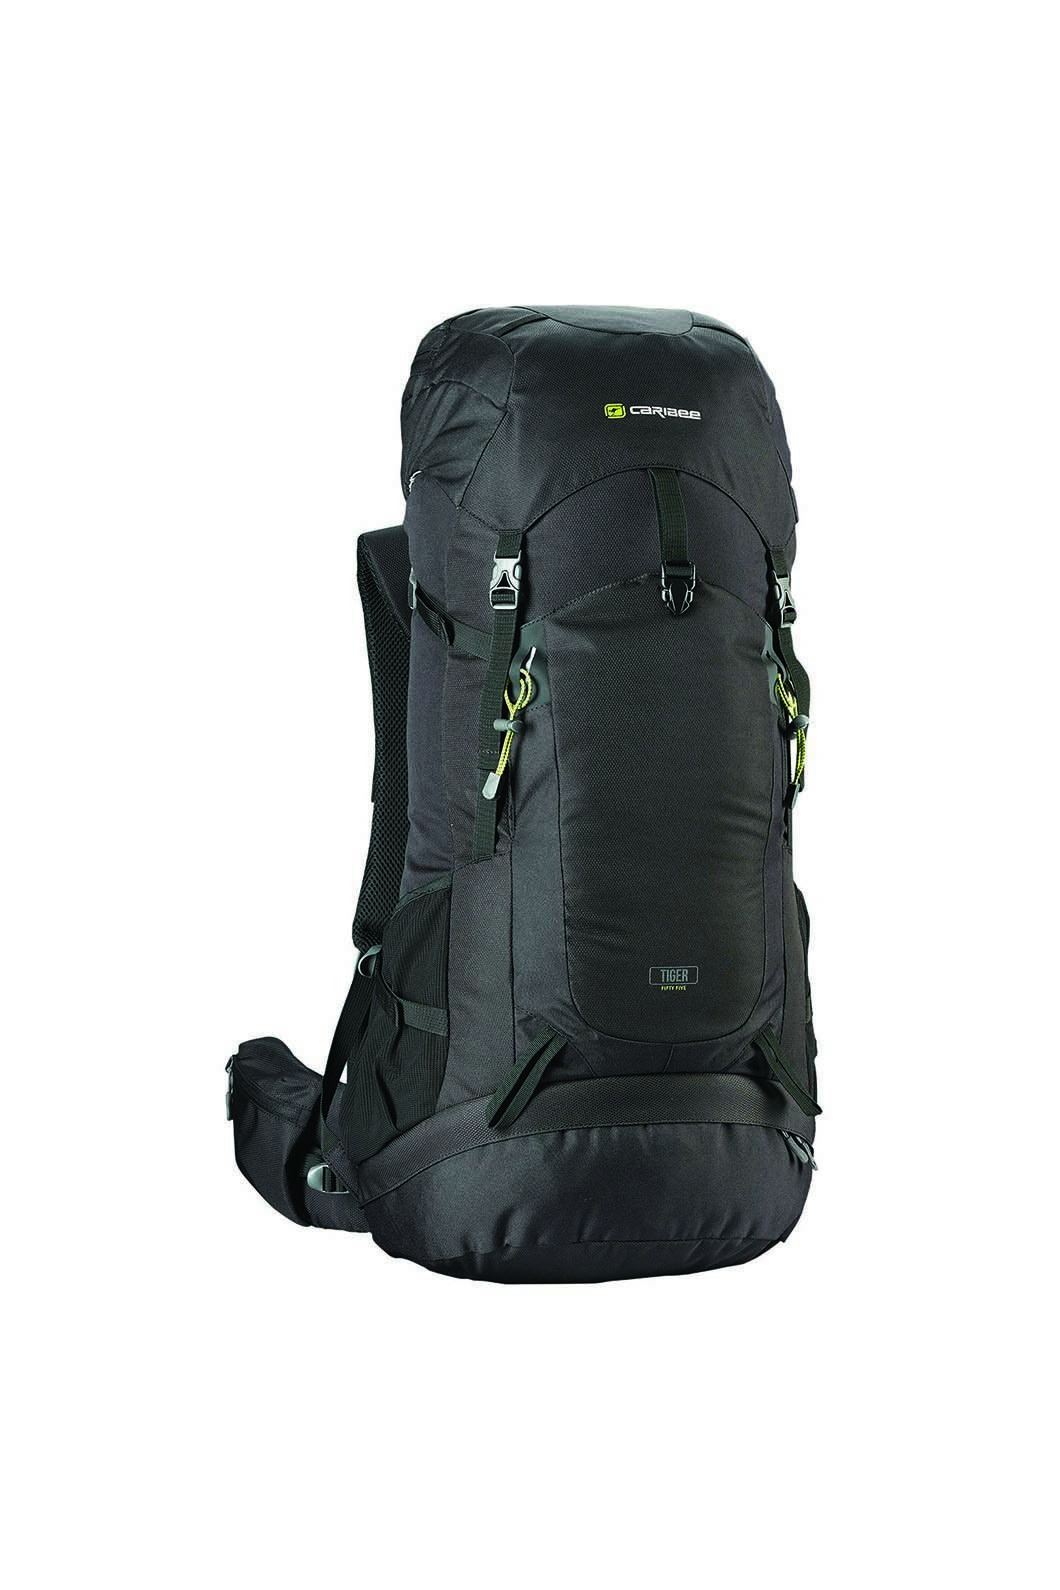 Caribee Tiger Trekking Pack 65L, None, hi-res